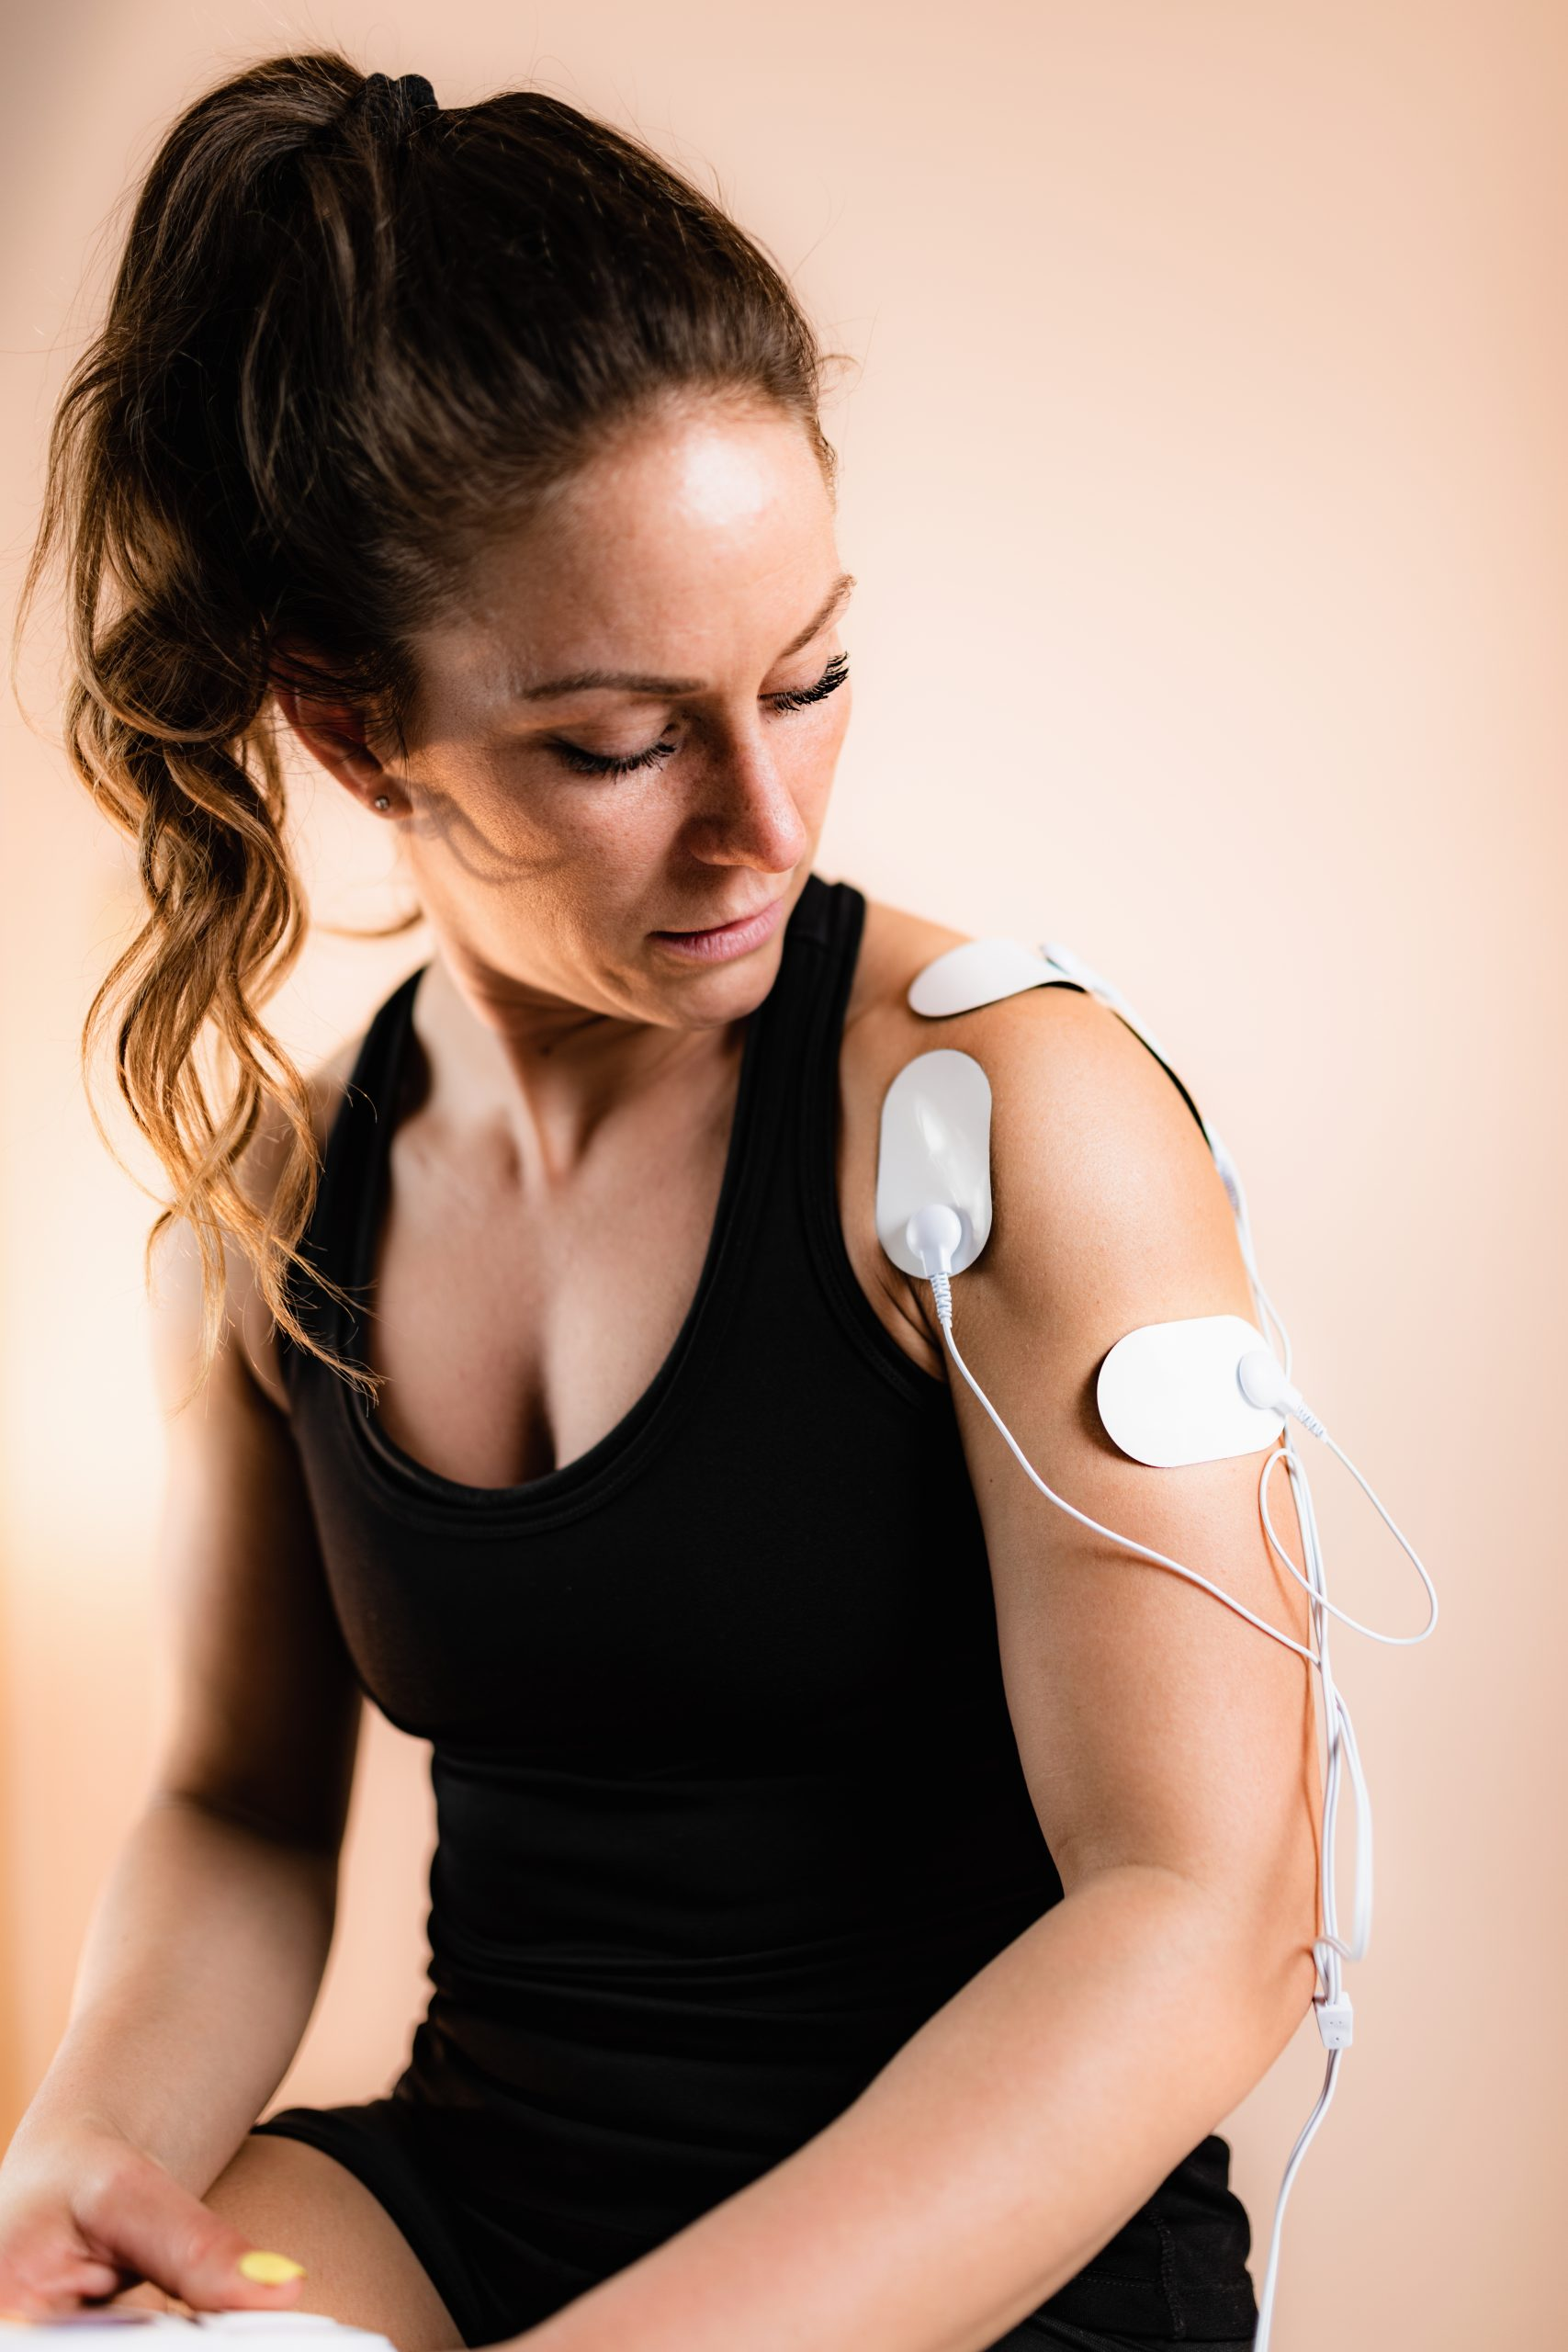 Shoulder Physical Therapy with TENS Electrode Pads, Transcutaneous Electrical Nerve Stimulation.